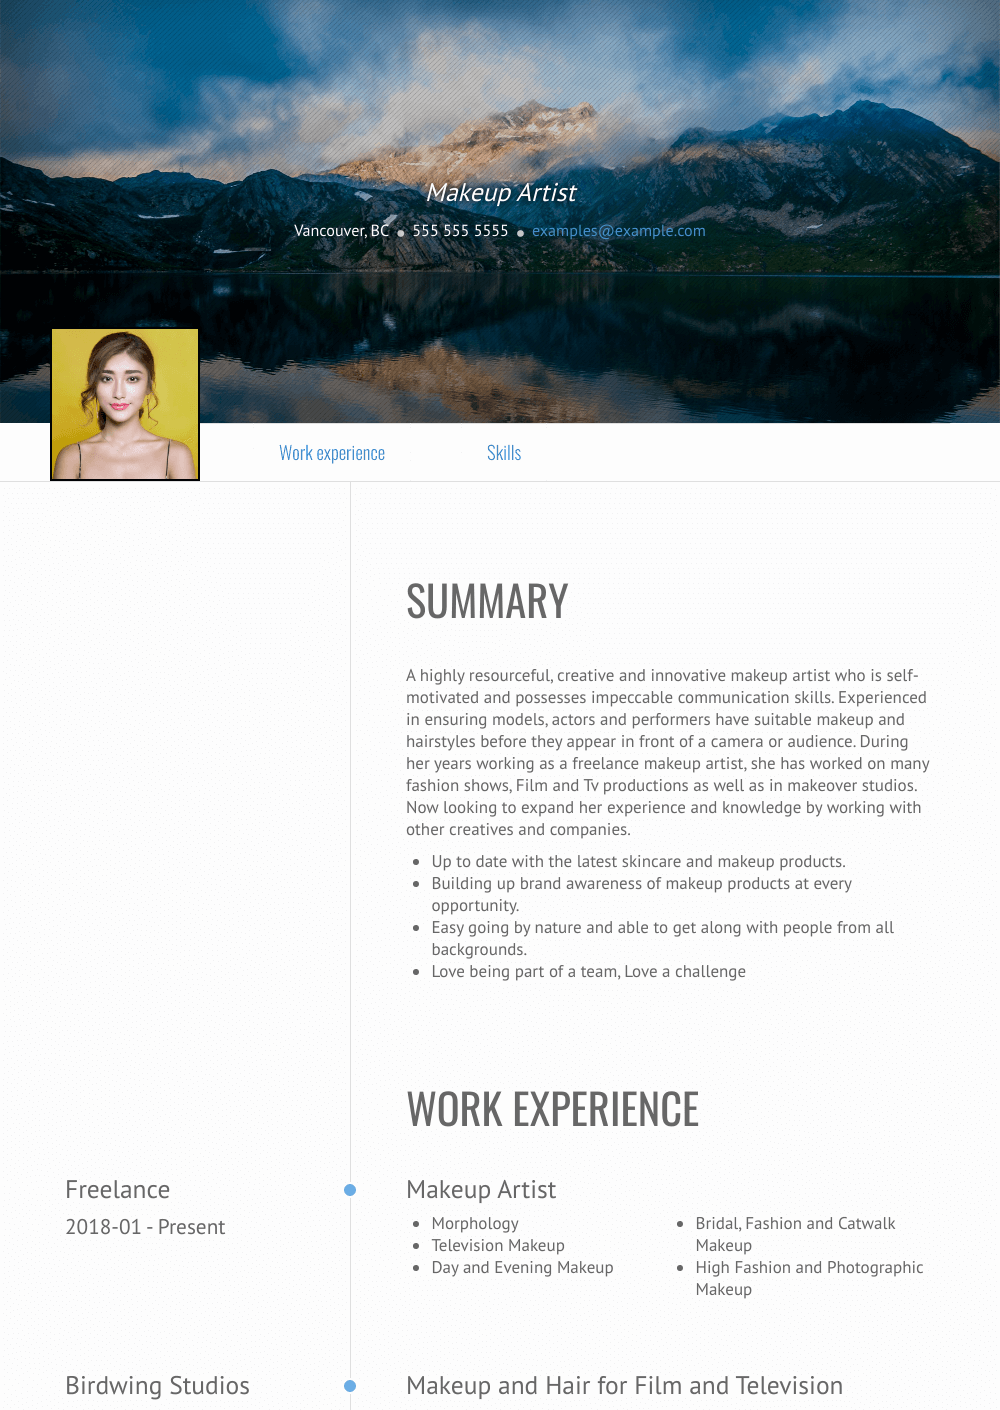 Makeup Artist Resume Samples And Templates Visualcv